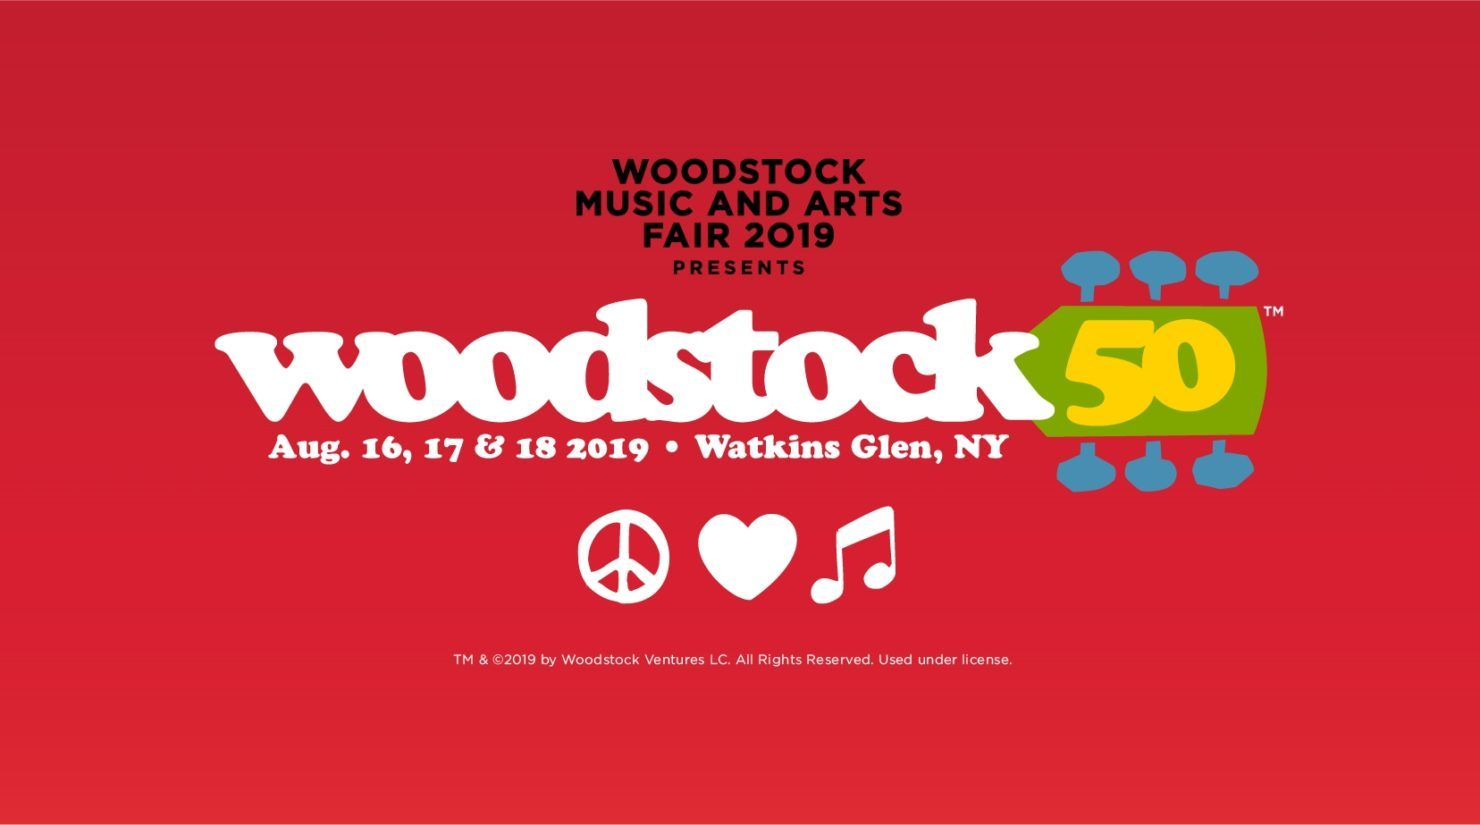 Recent Posts Iconic Woodstock Music amp Arts Festival Announces the Official 50th Anniversary Celebration OFFICIAL WOODSTOCK 50 NOT AT BETHEL SITE